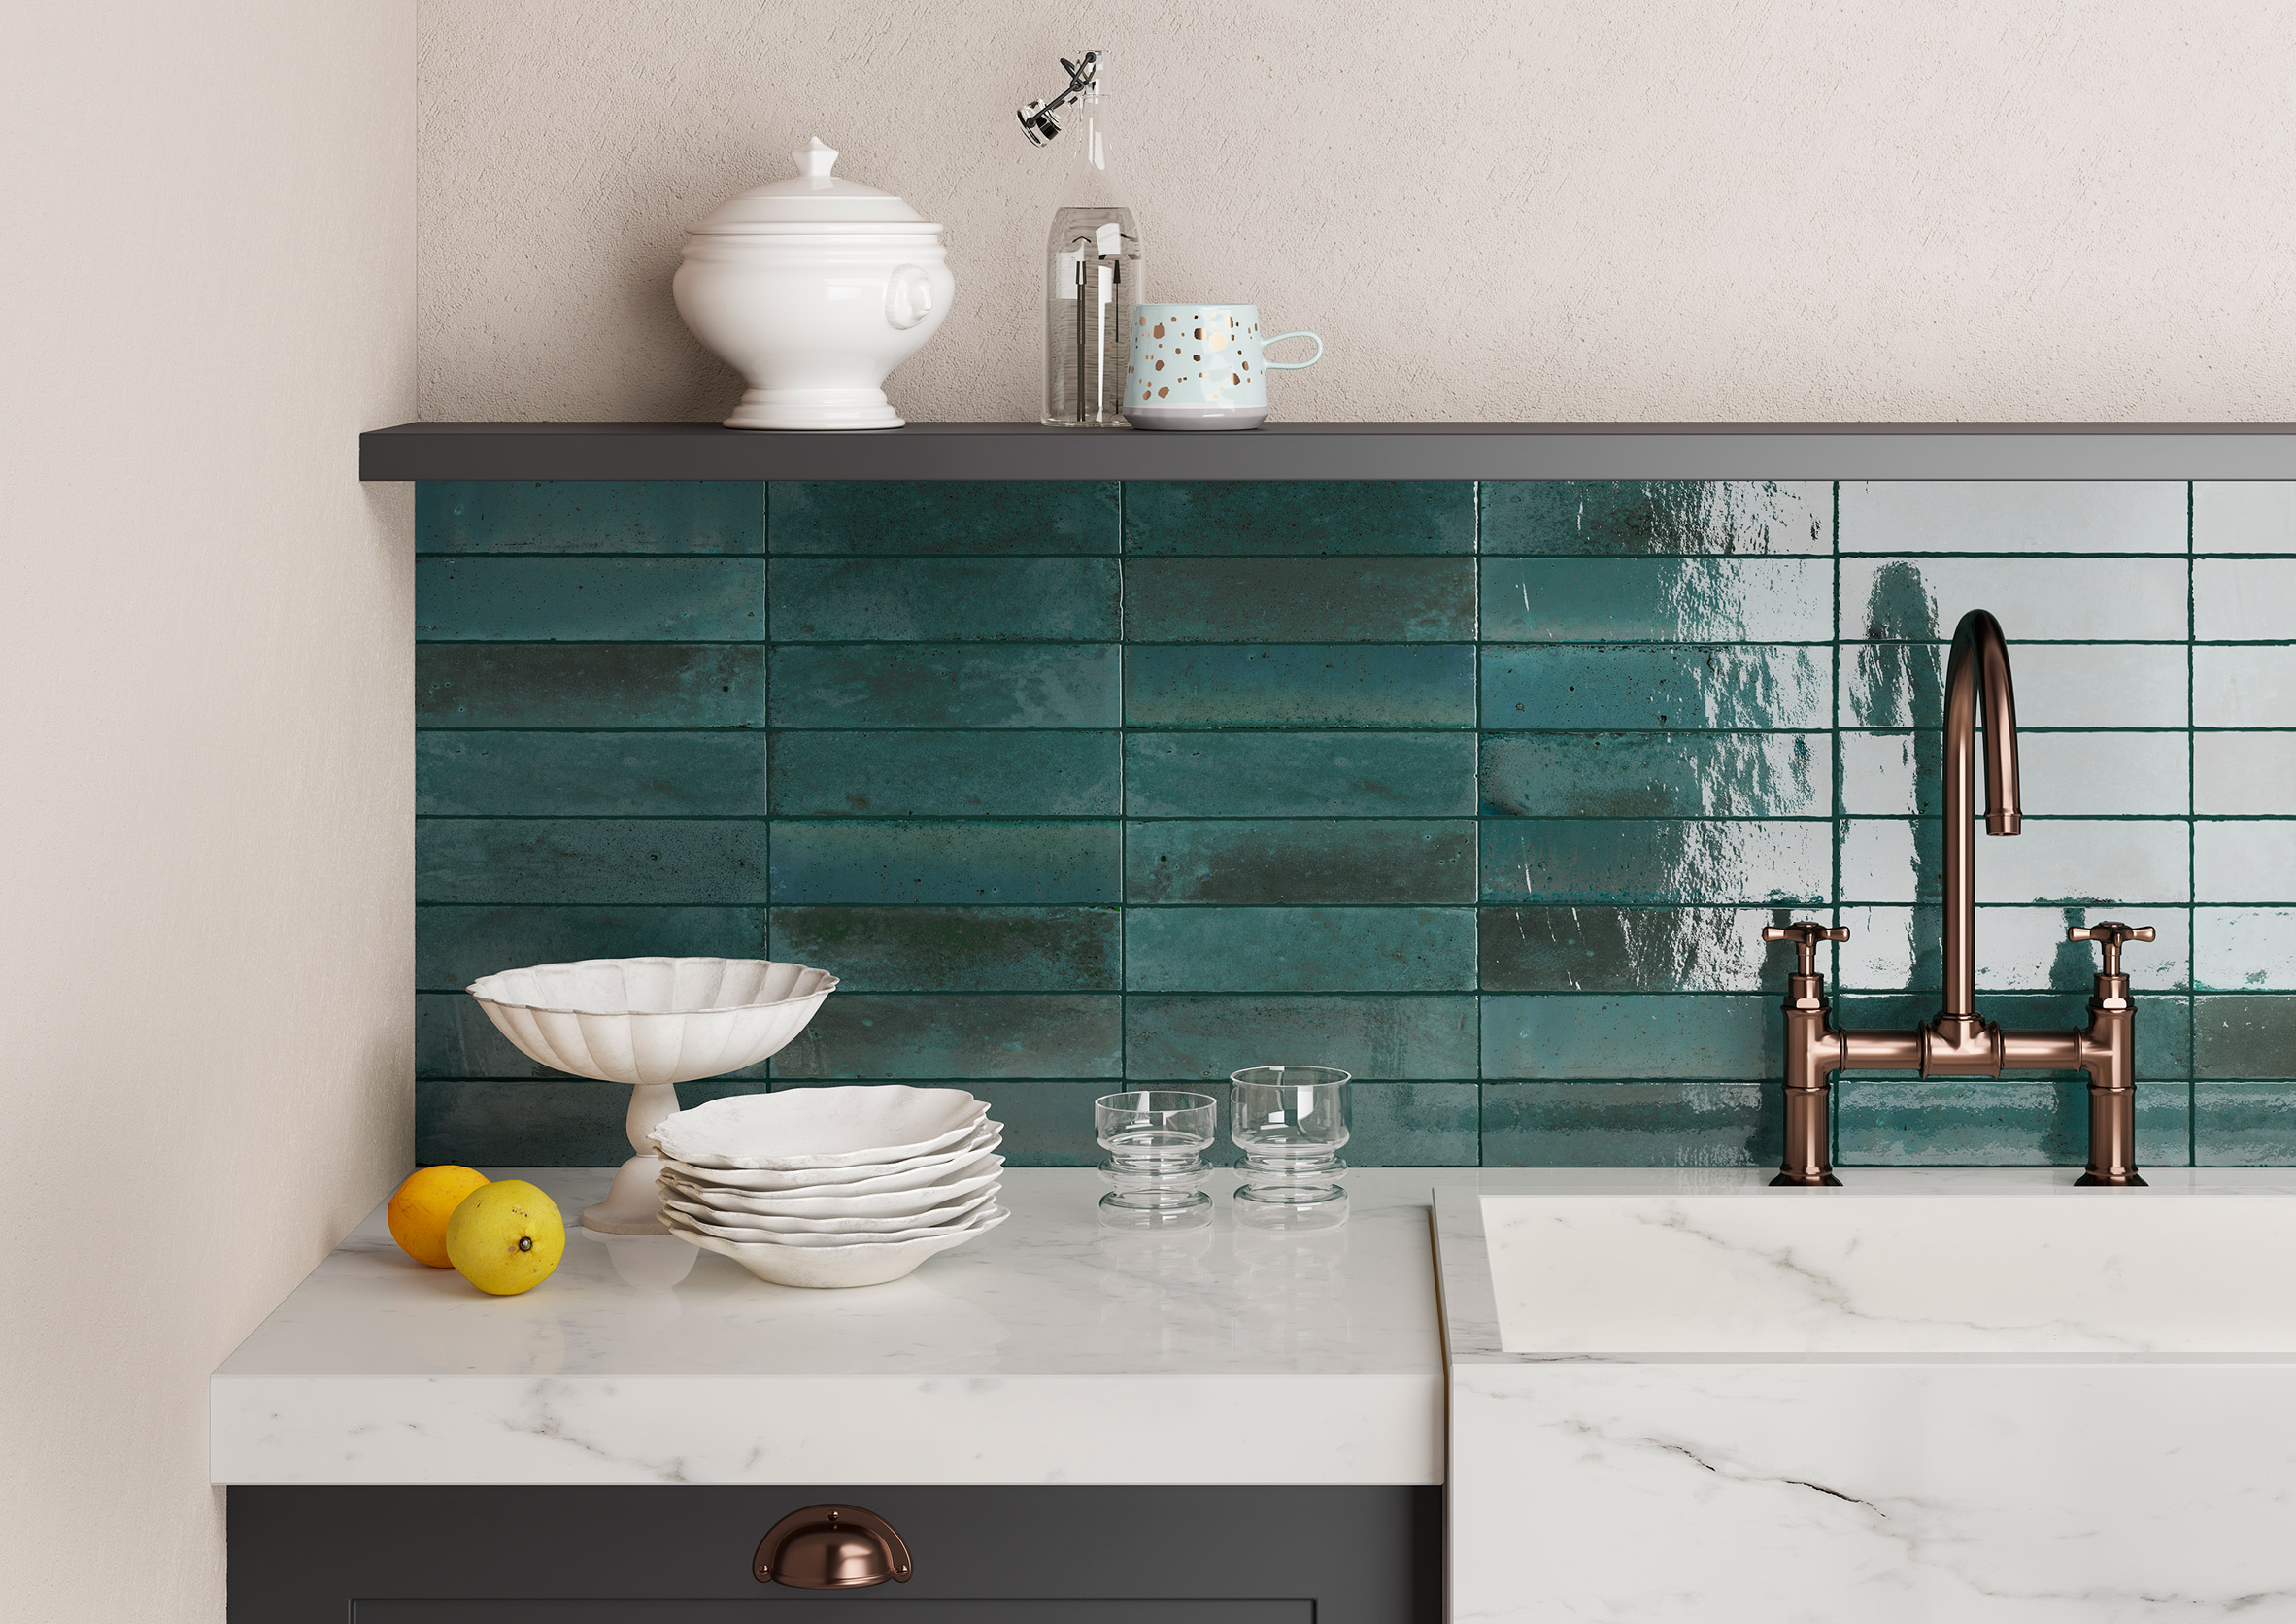 The Crogiolo Lume tile range is based on majolica tiles from the Mediterranean